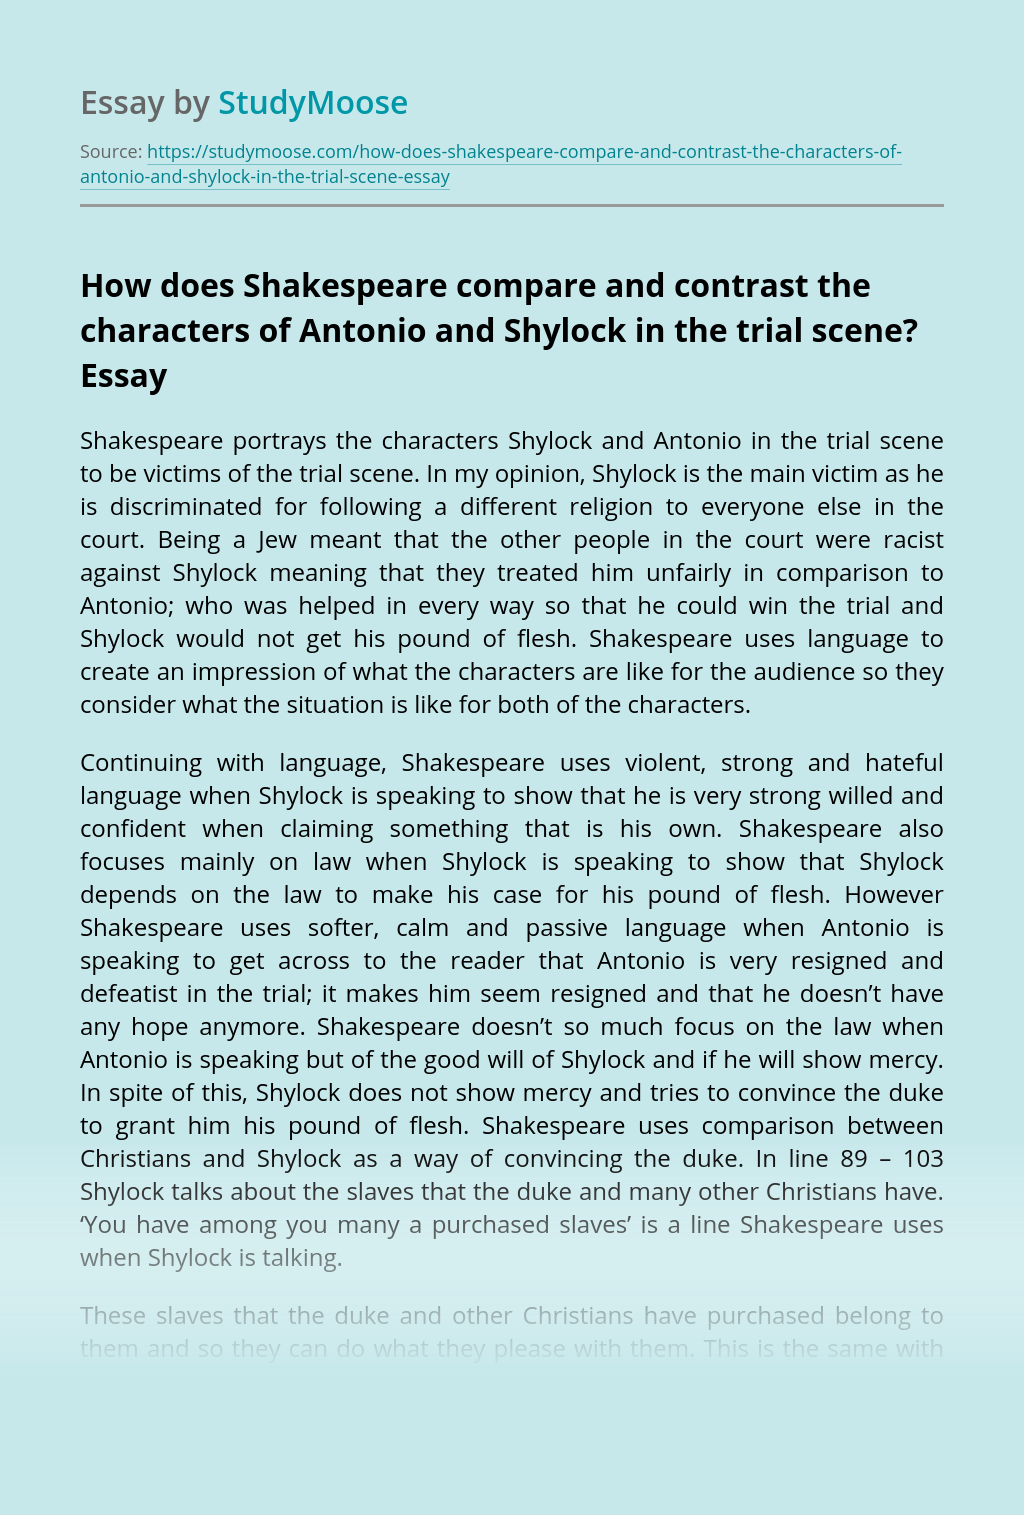 How does Shakespeare compare and contrast the characters of Antonio and Shylock in the trial scene?